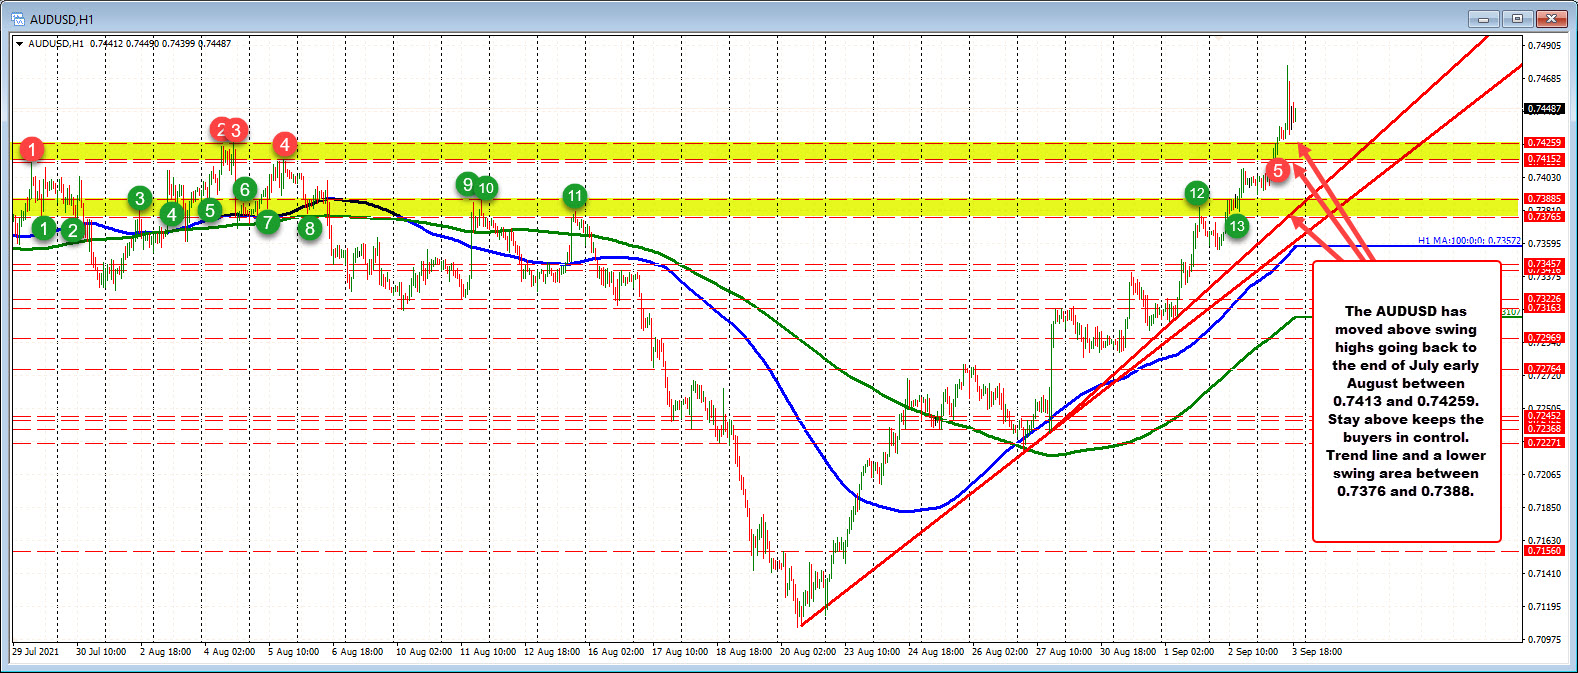 AUDUSD up 8 of the last 10 trading day